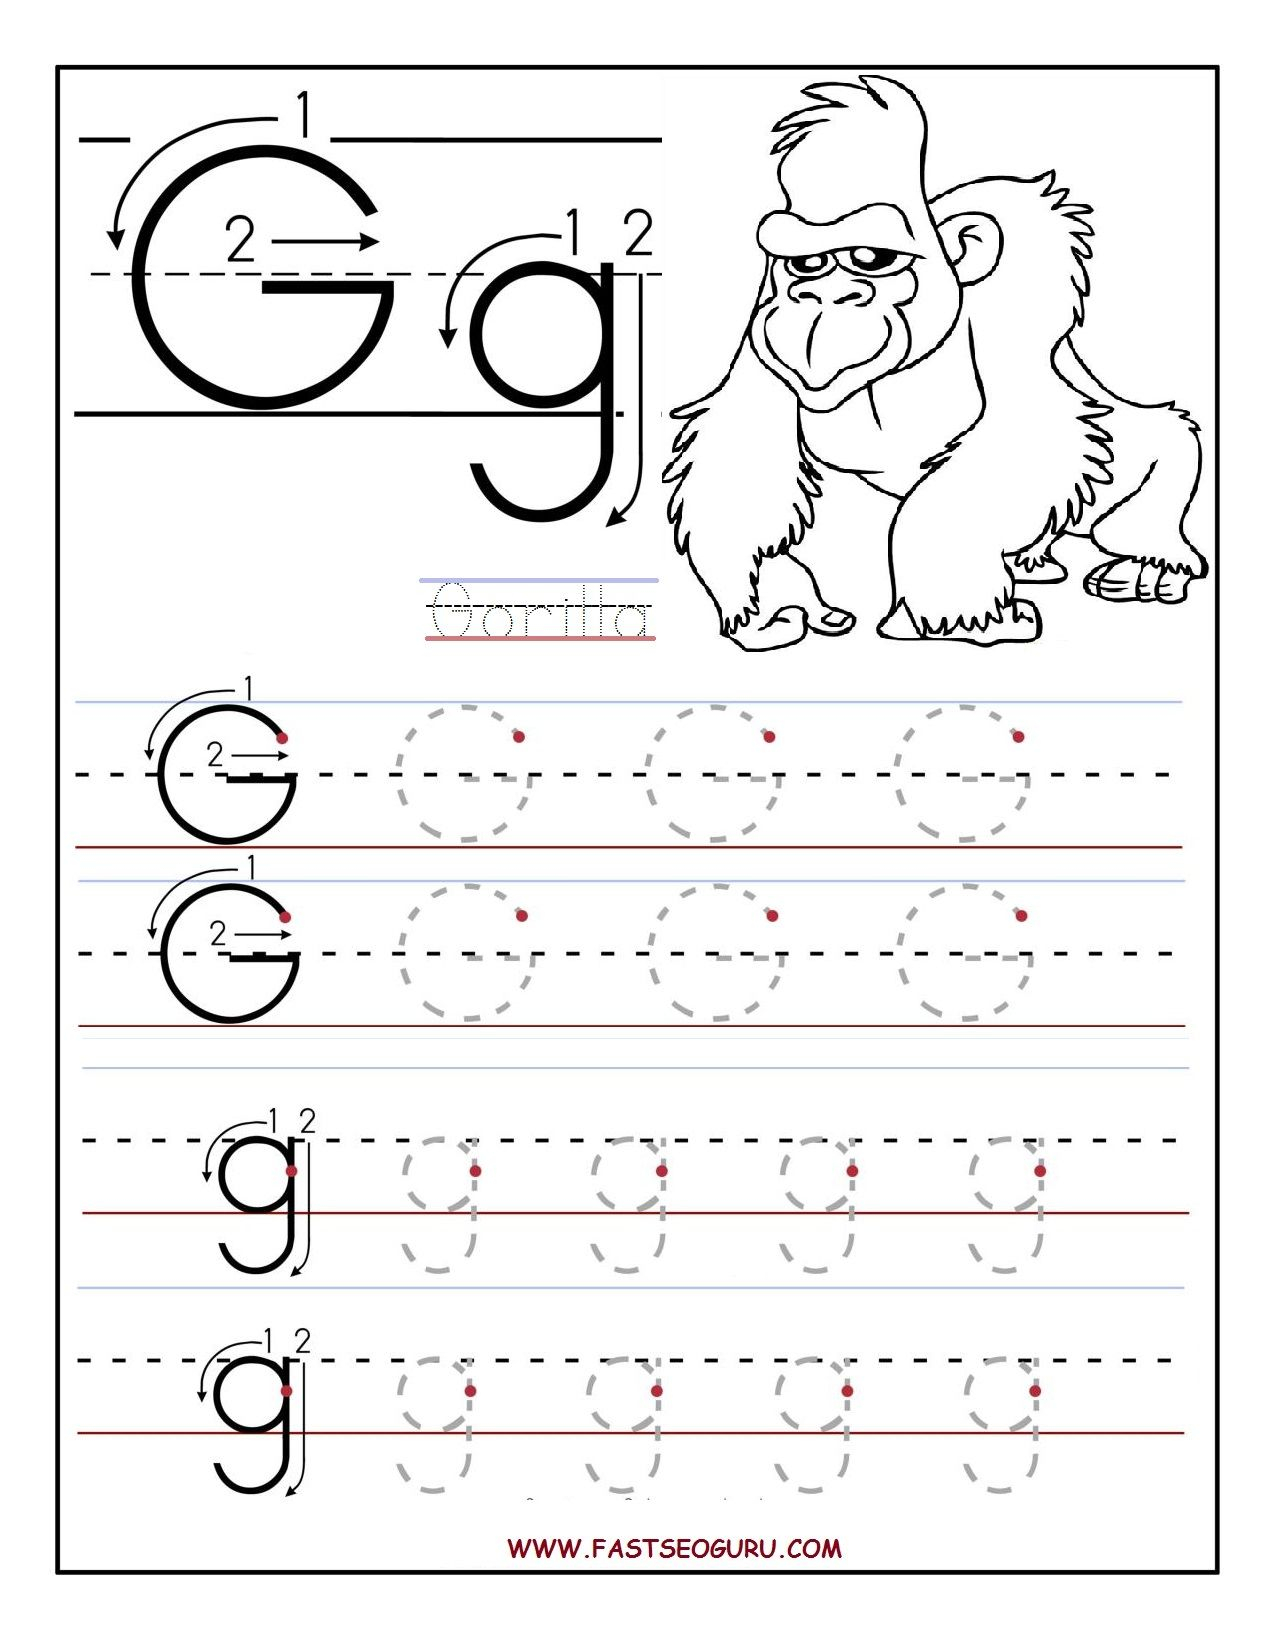 Letter G Tracing Printable